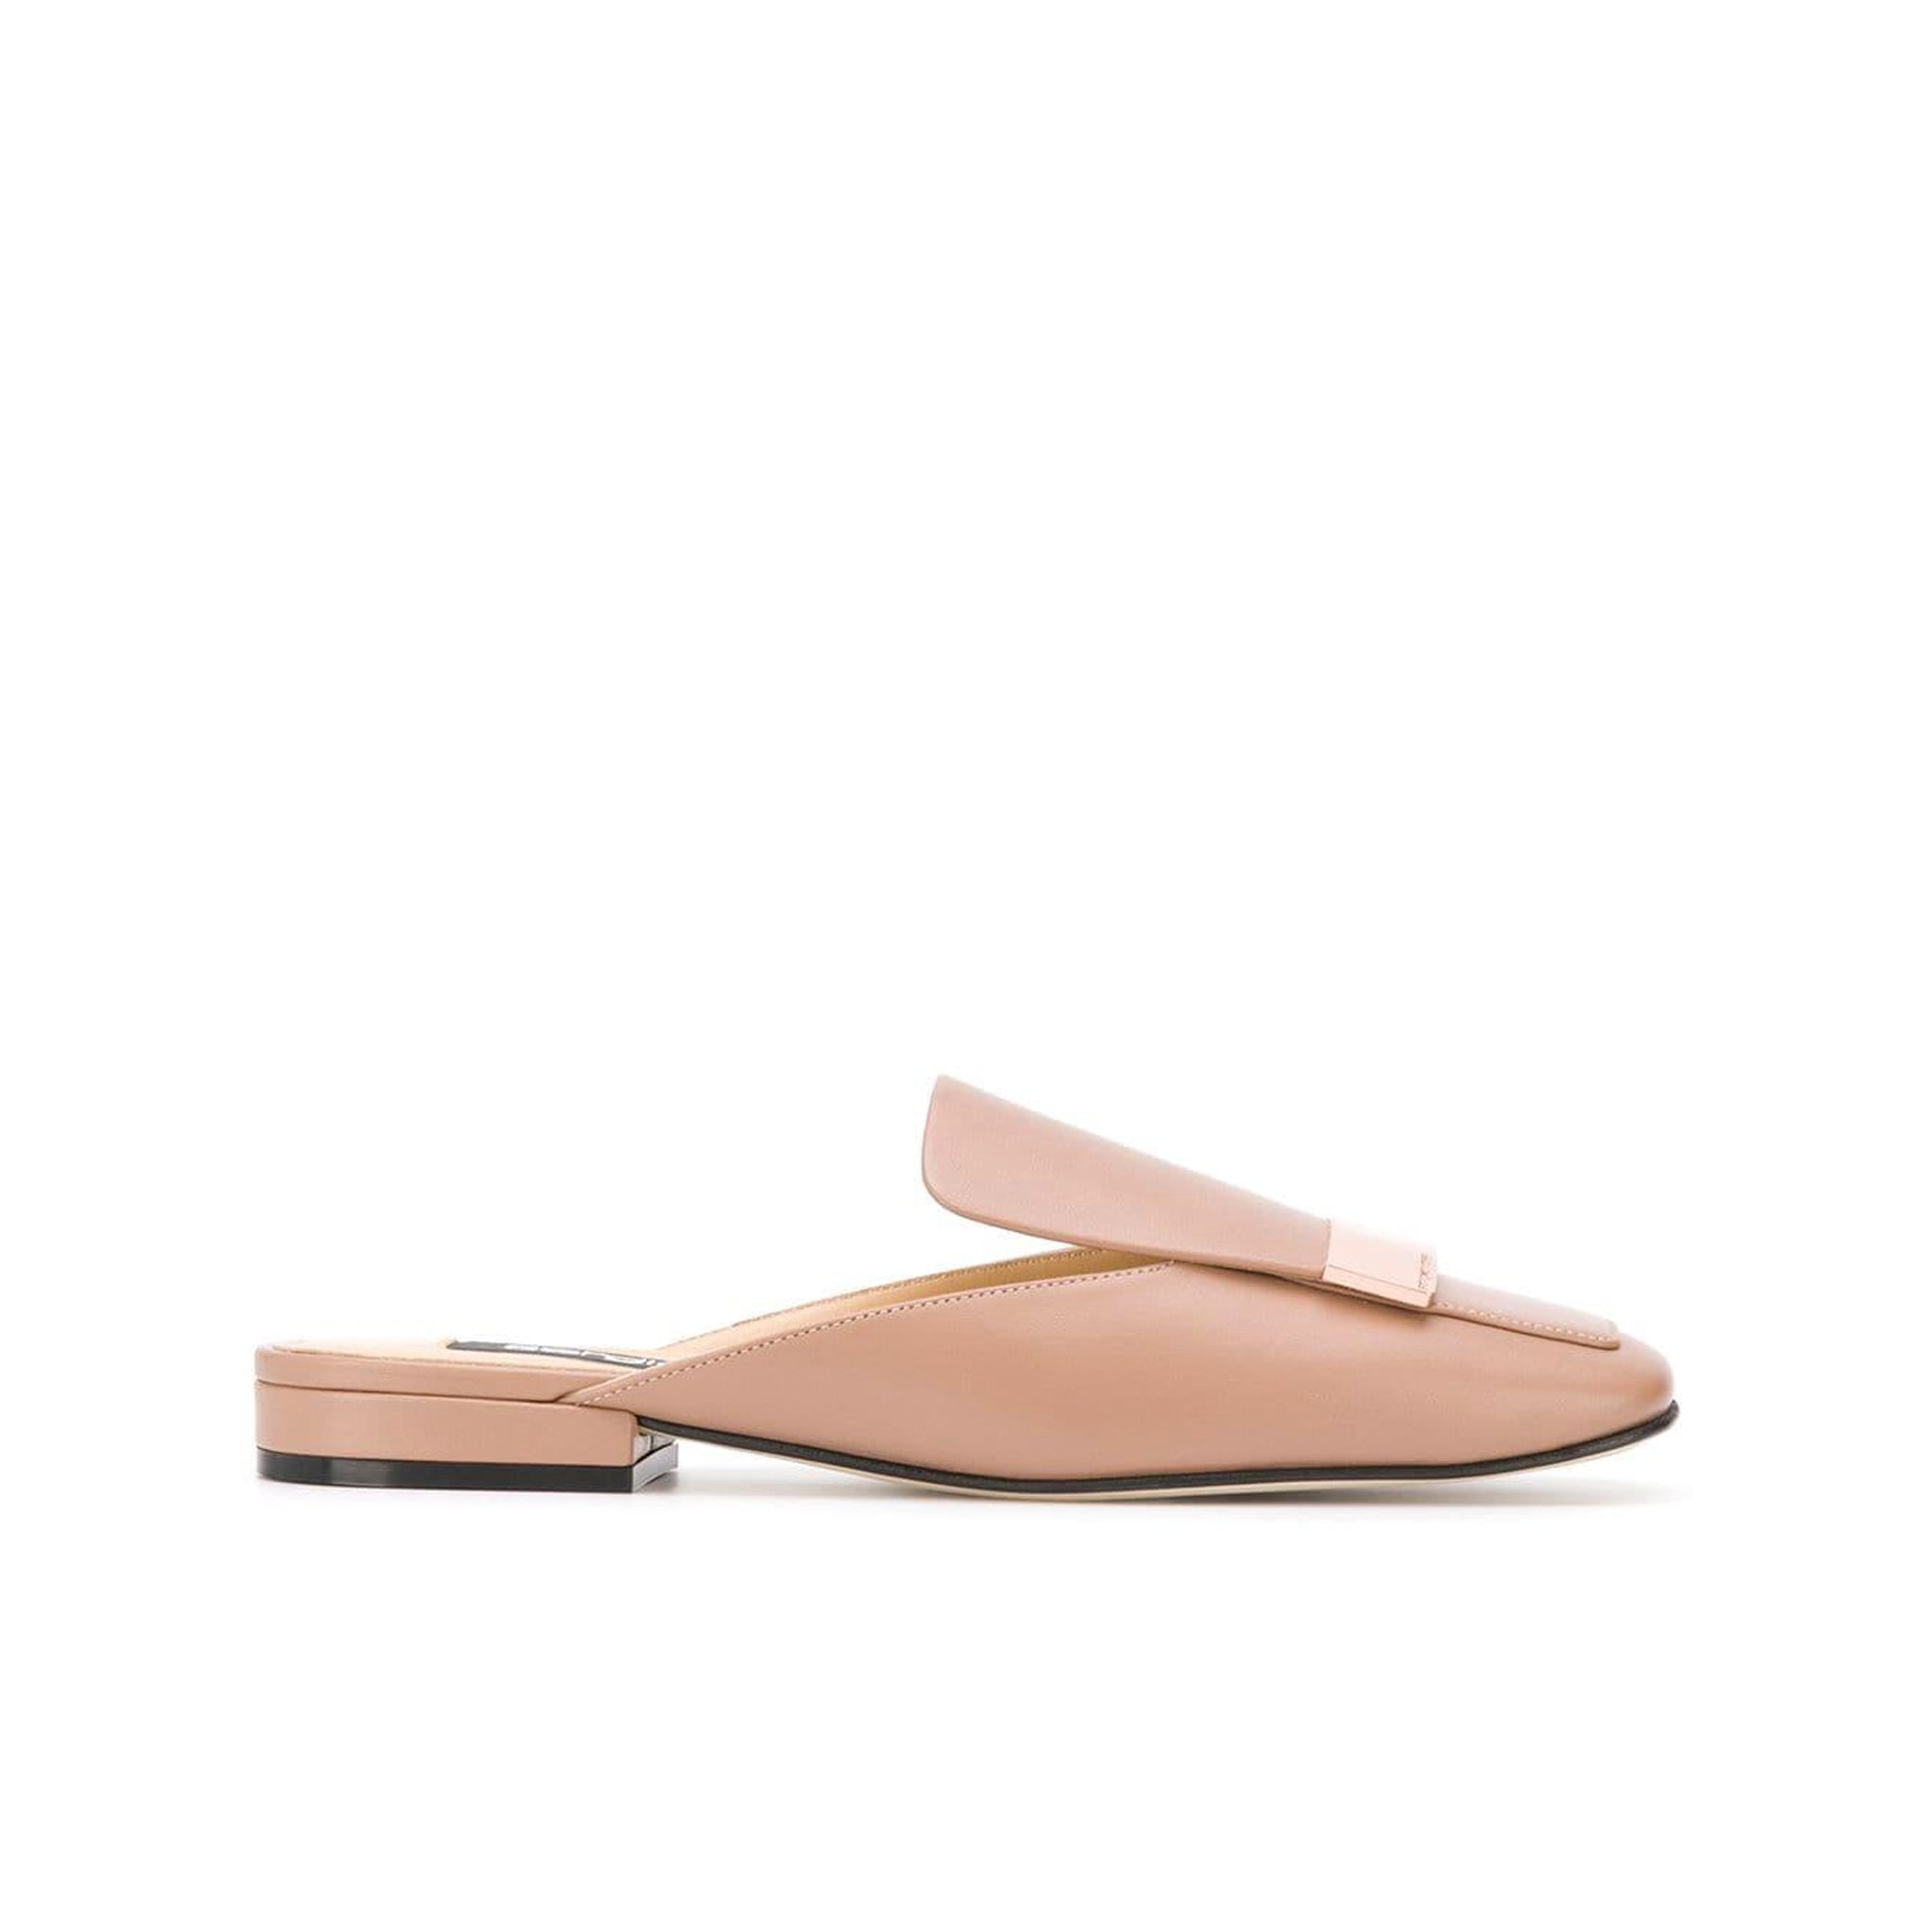 Sergio Rossi Sr1 Leather Flat Mules